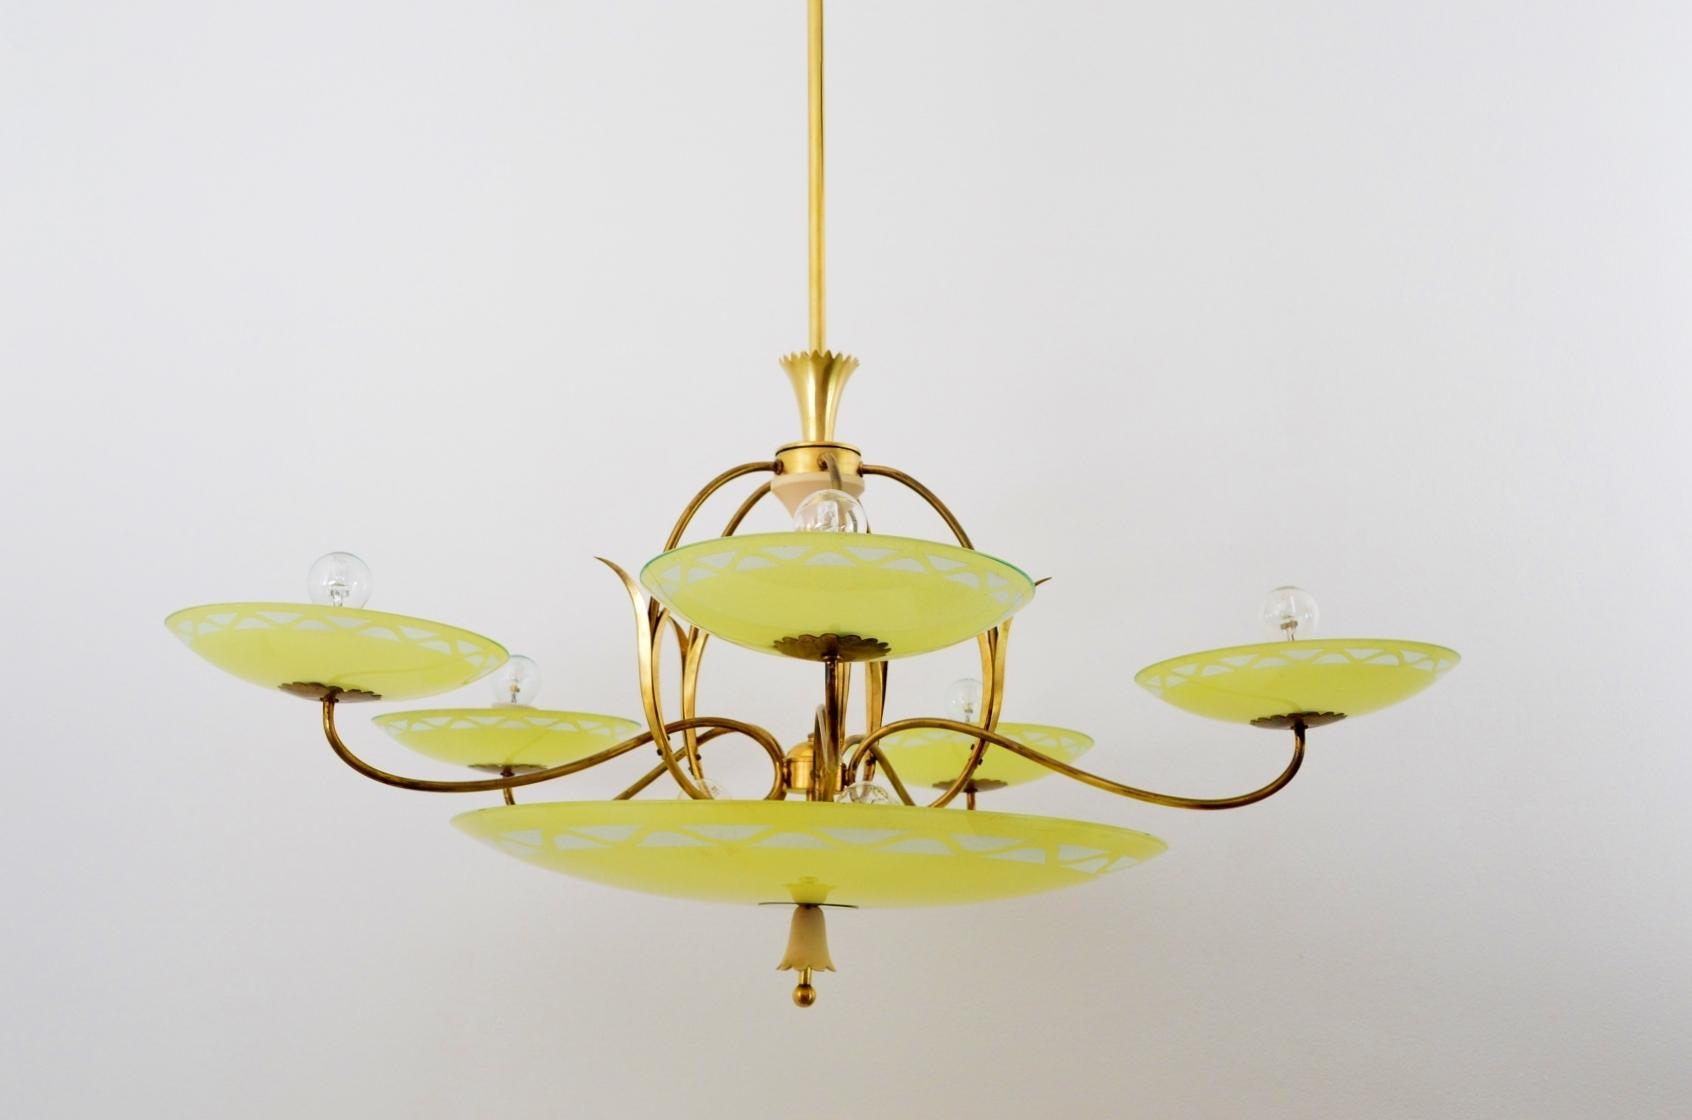 Large Vintage Italian Art Deco Five Arm Brass Yellow Glass Intended For Large Glass Chandelier (Image 12 of 15)